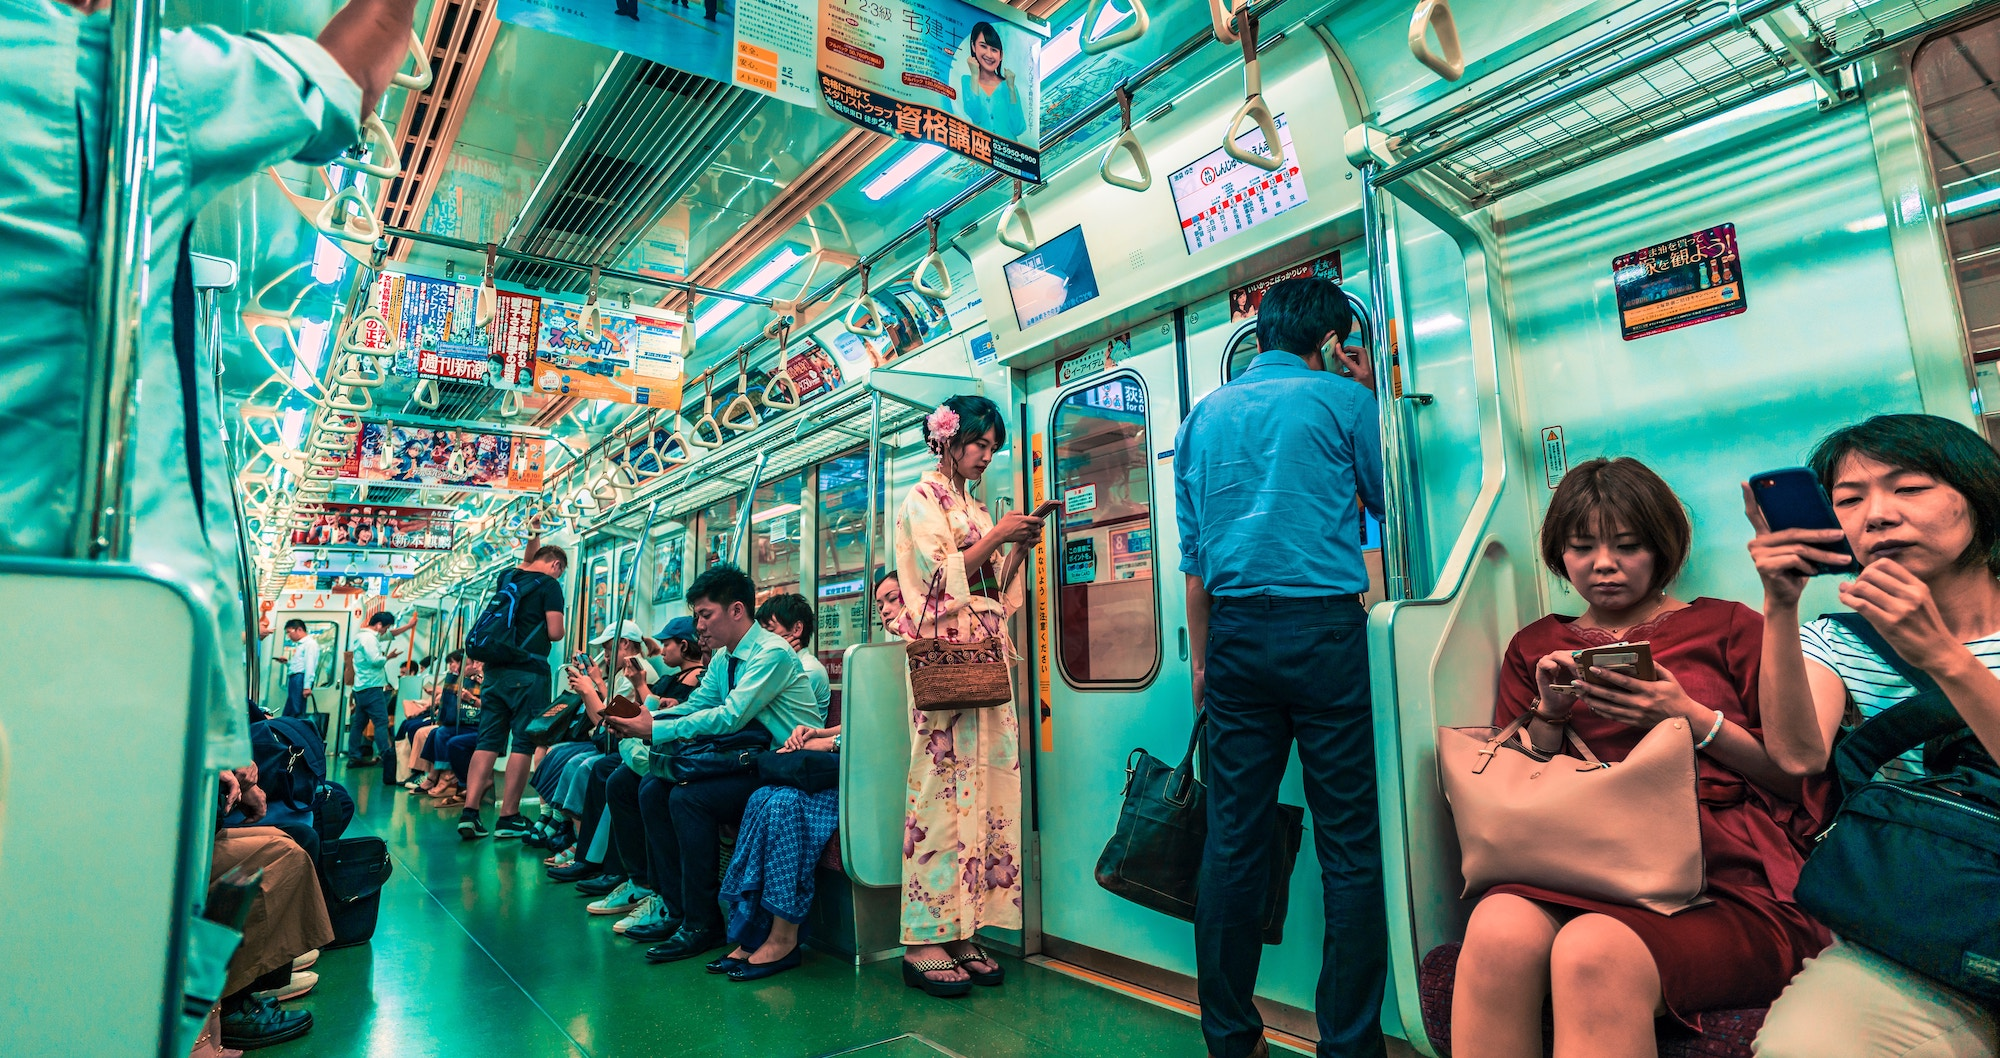 10 Tips for Train Etiquette in Japan